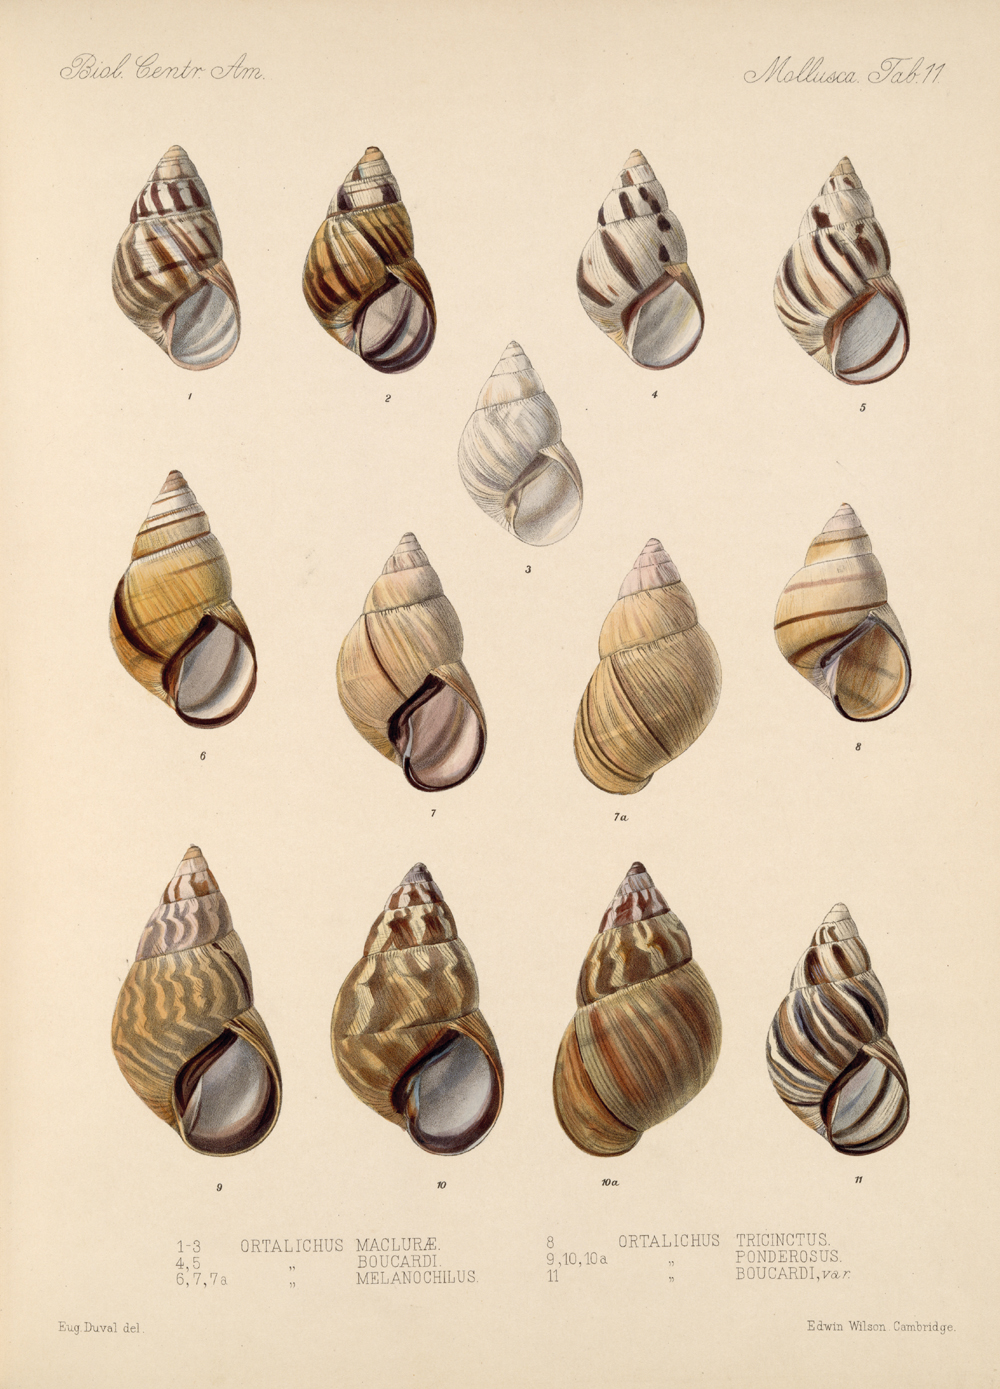 Shells and Mollusks,  Image number:bca_06_00_00_731